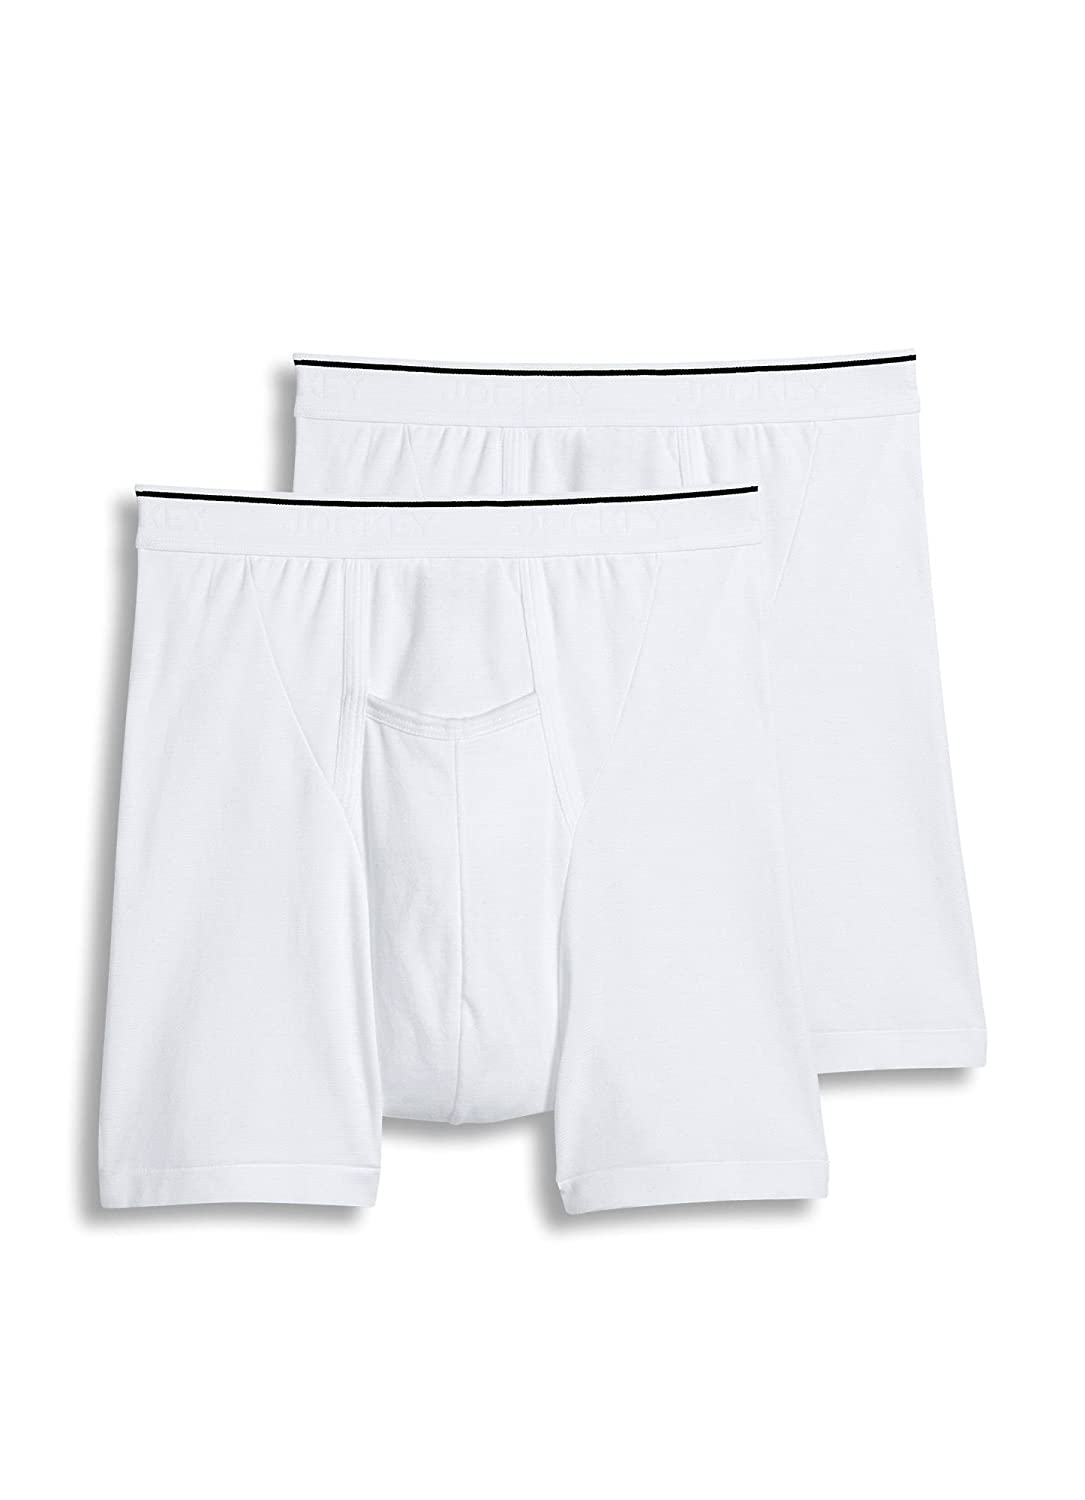 Jockey Men's Underwear Big Man Pouch Boxer Brief - 2 Pack